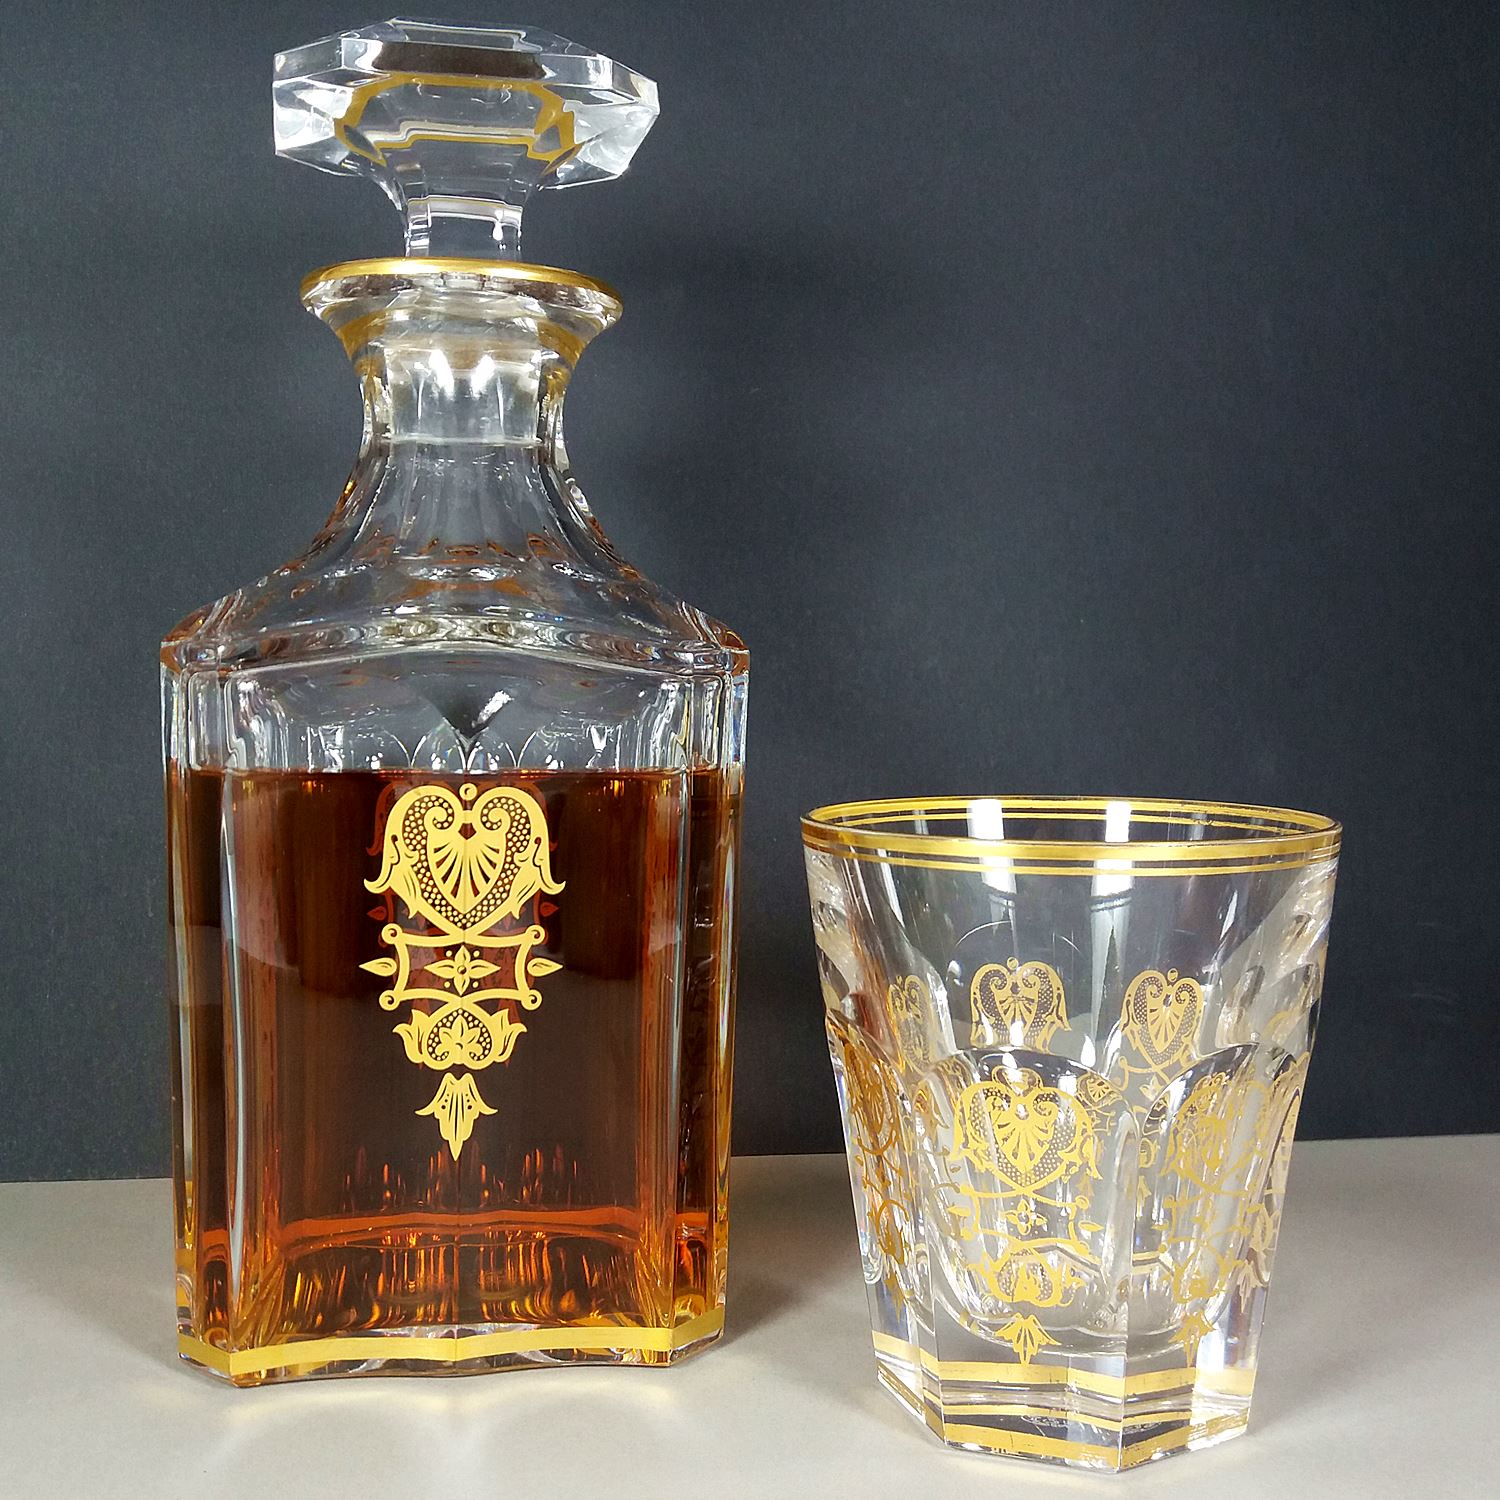 Baccarat Harcourt Empire Vintage Crystal Glass Whiskey Decanter w/Gold Details